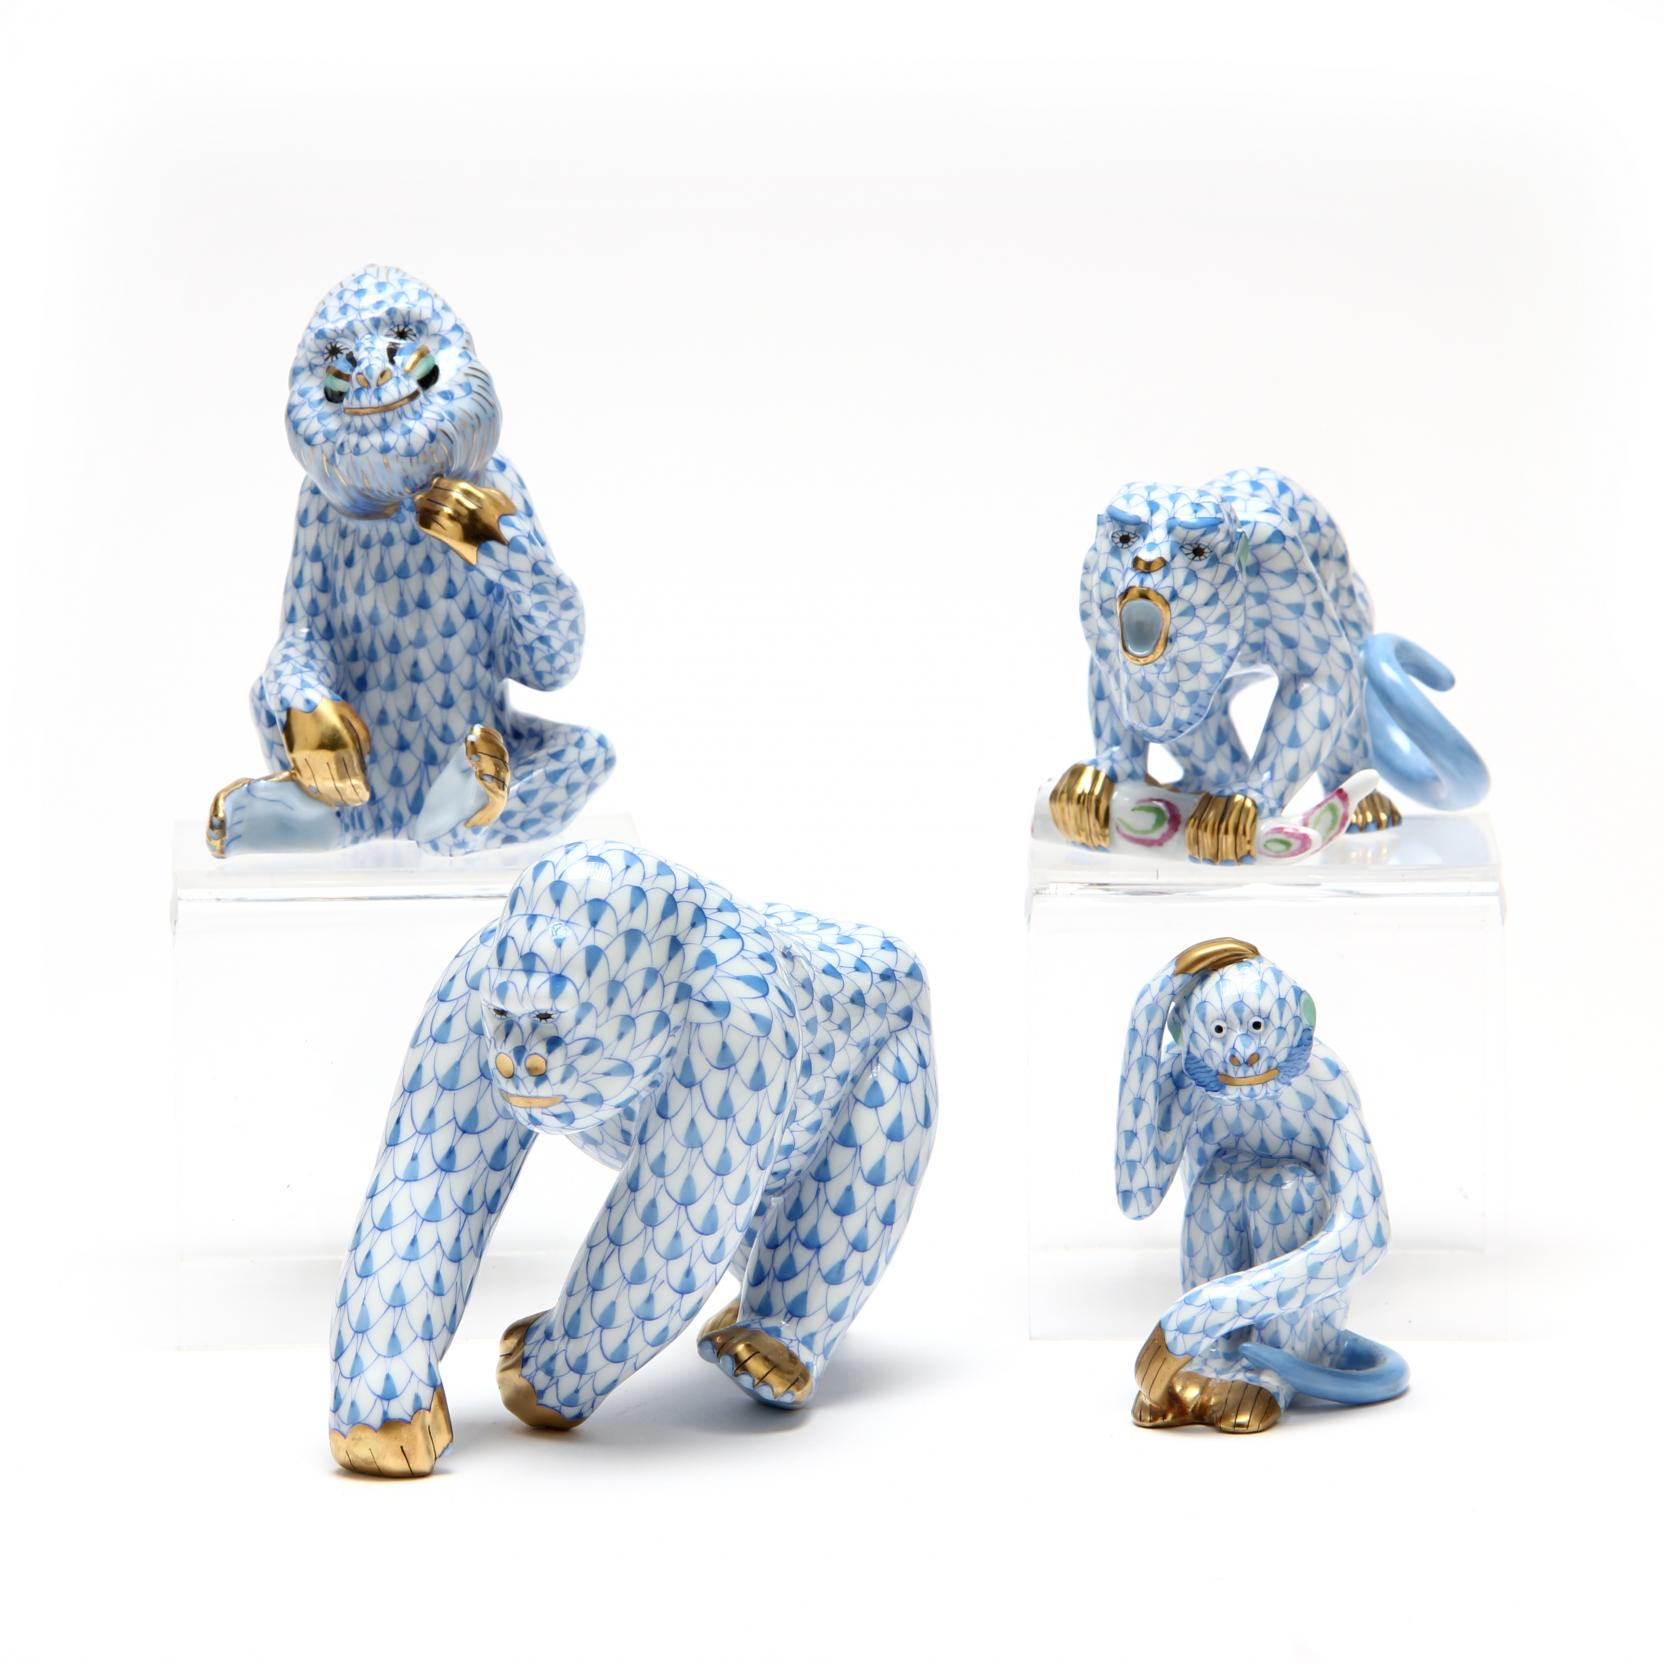 a-group-of-four-herend-simian-figurines